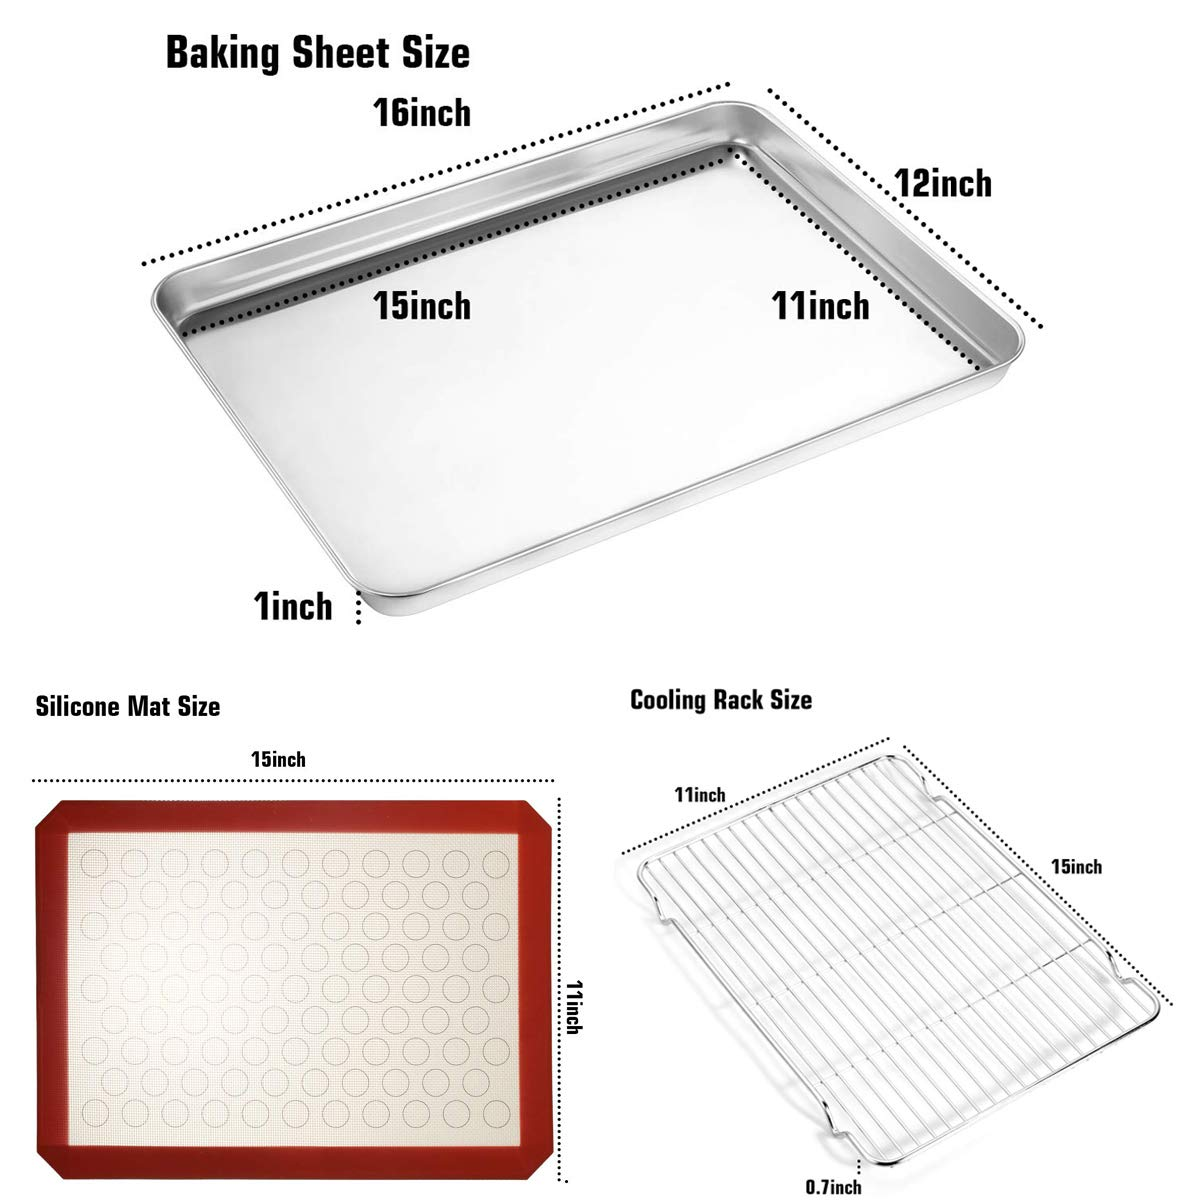 Footek Baking Sheets, Rack Set & Silicone Baking Mats, Stainless Steel Baking Pans Rectangle 16'' L×12'' W×1'' H, Non Toxic & Healthy, Mirror Polish & Easy Clean, Pack of 6 (2 Sheets + 2 Racks + 2 Mats) by Footek (Image #4)